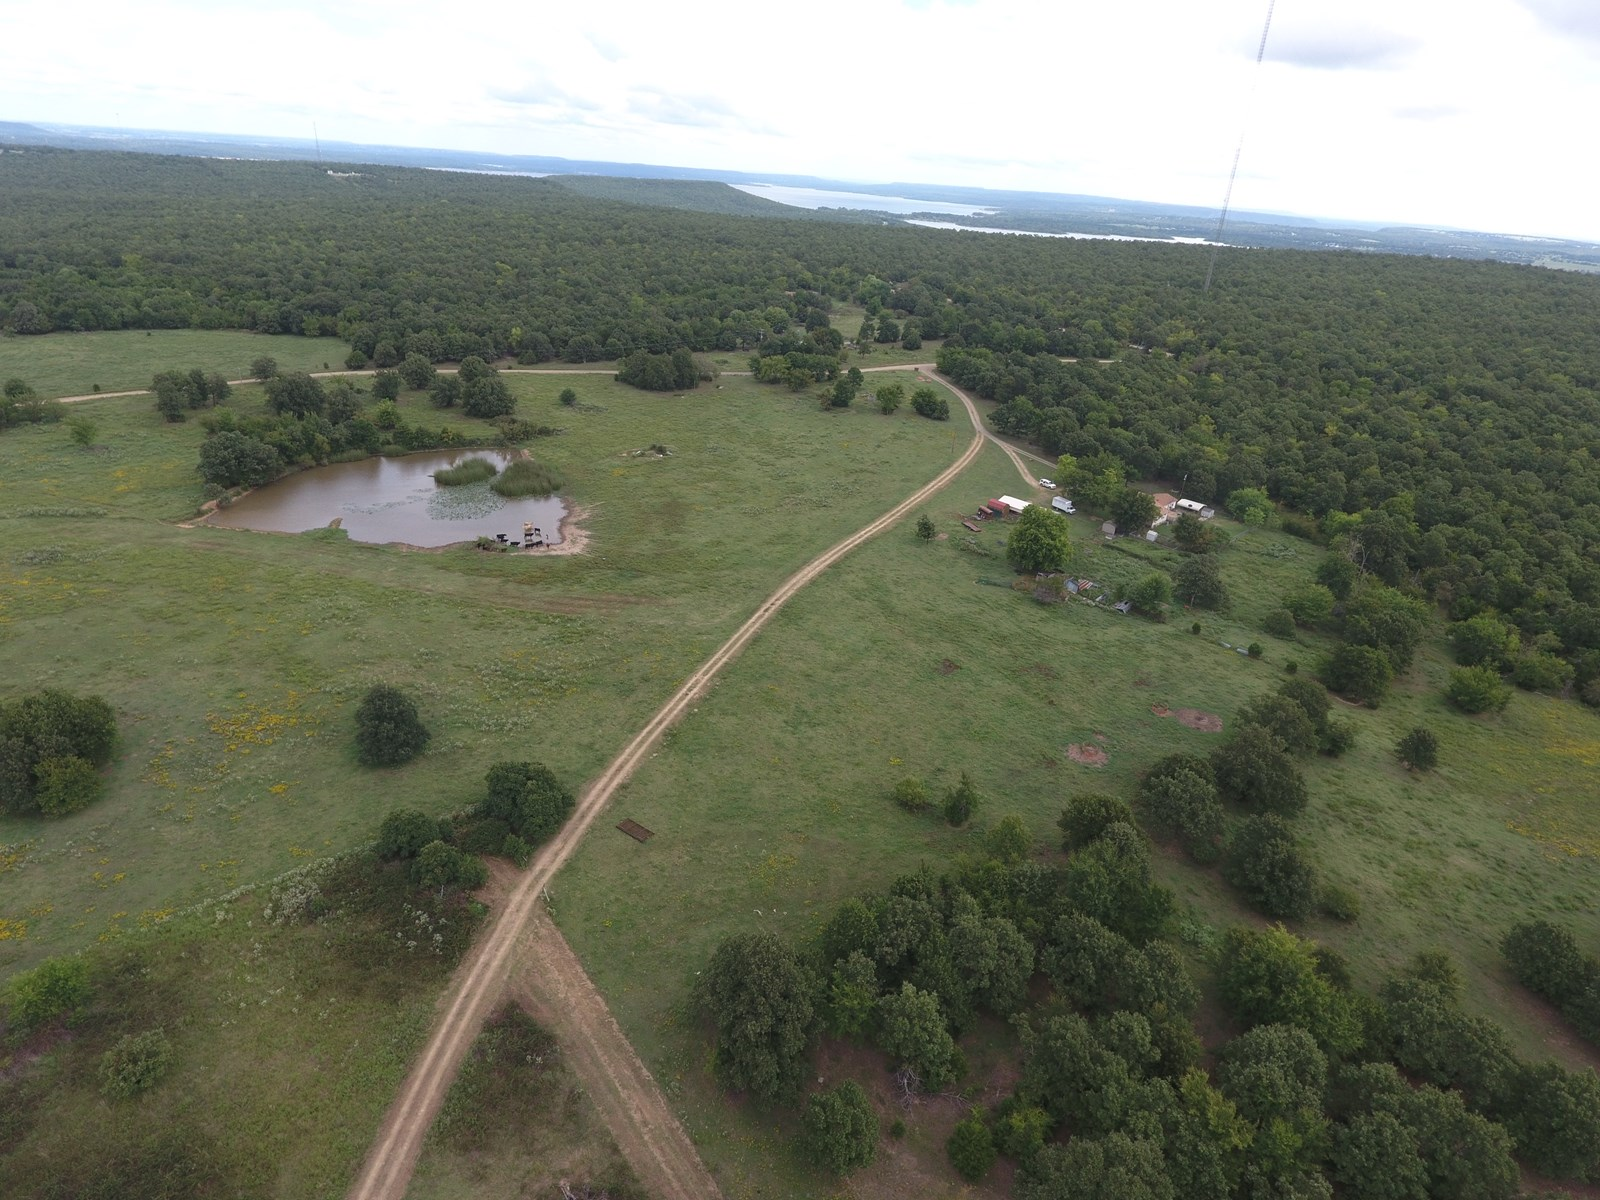 Country Home for sale, 60 acres, Stigler OK, Haskell Co.